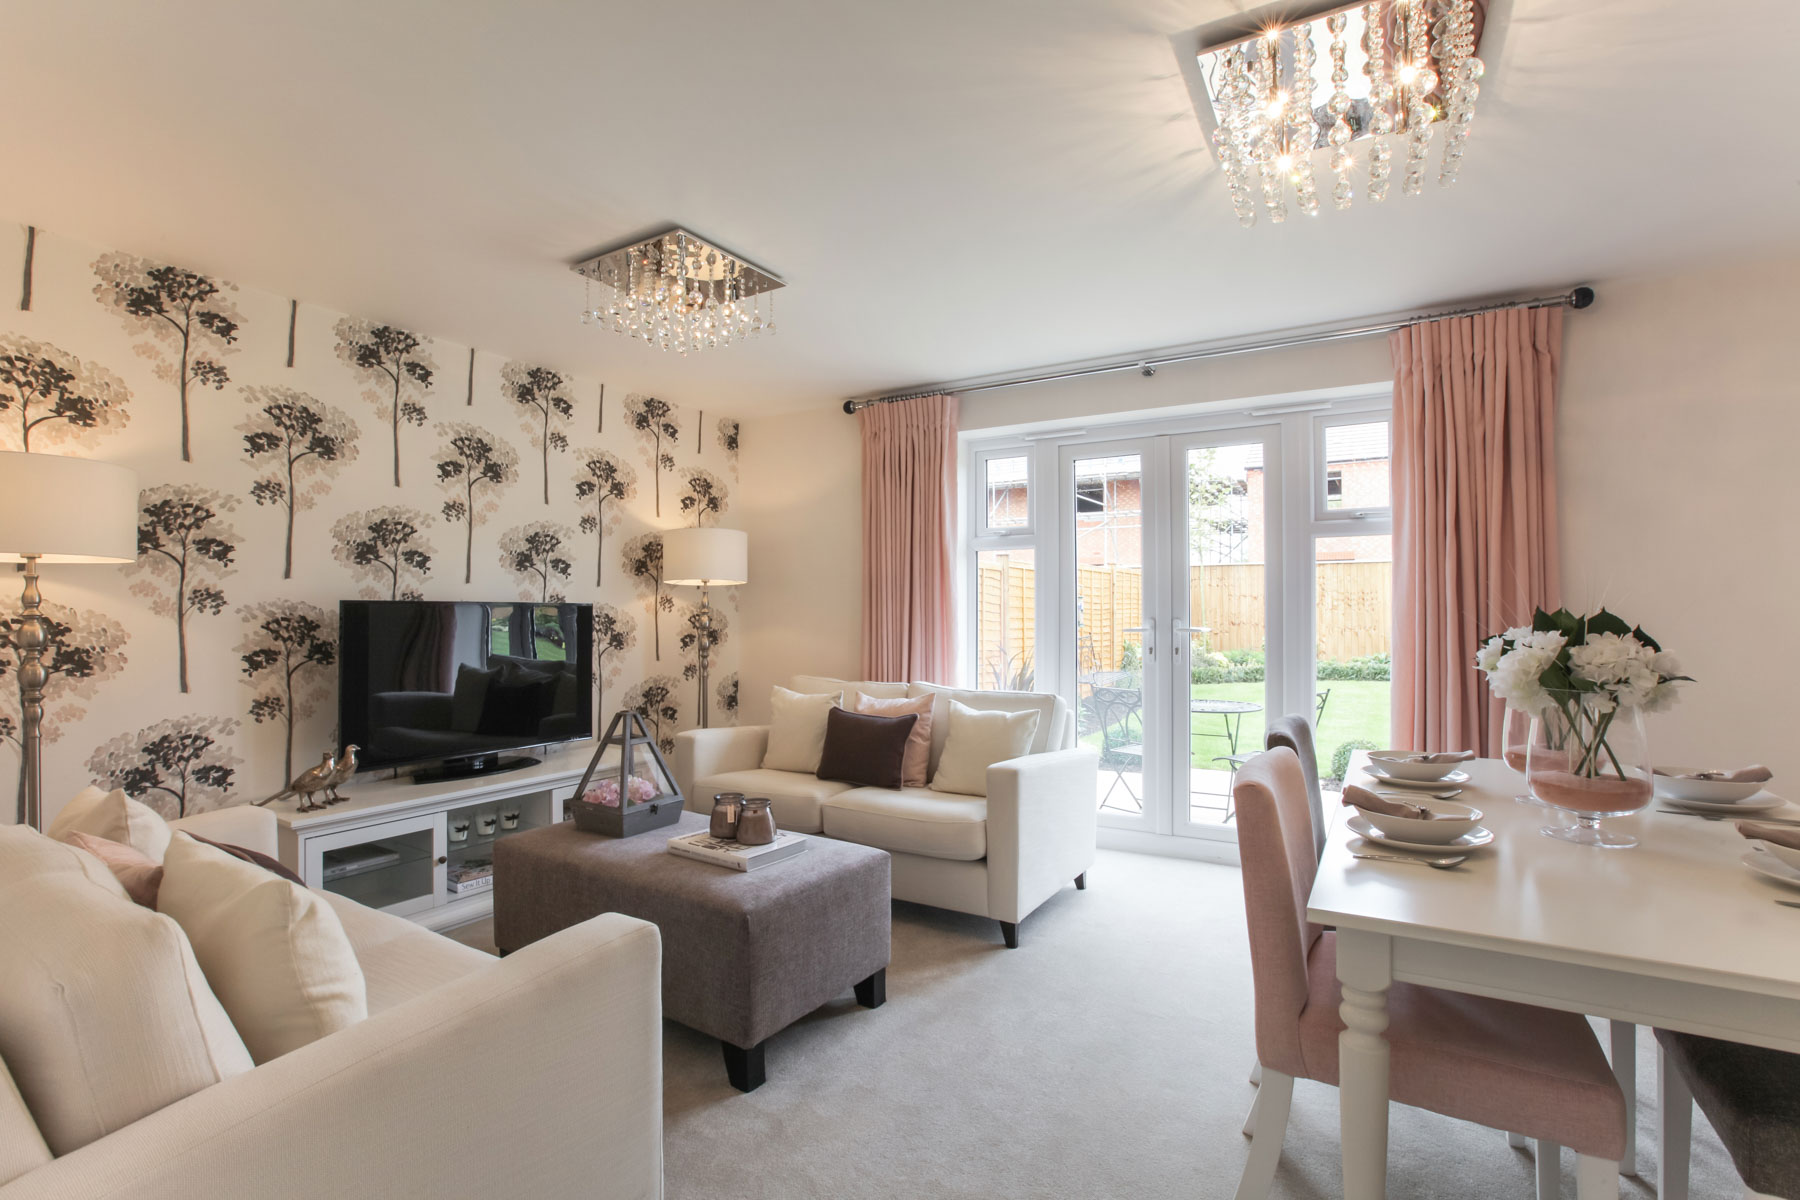 TW Exeter - Sherford - Flatford example living room